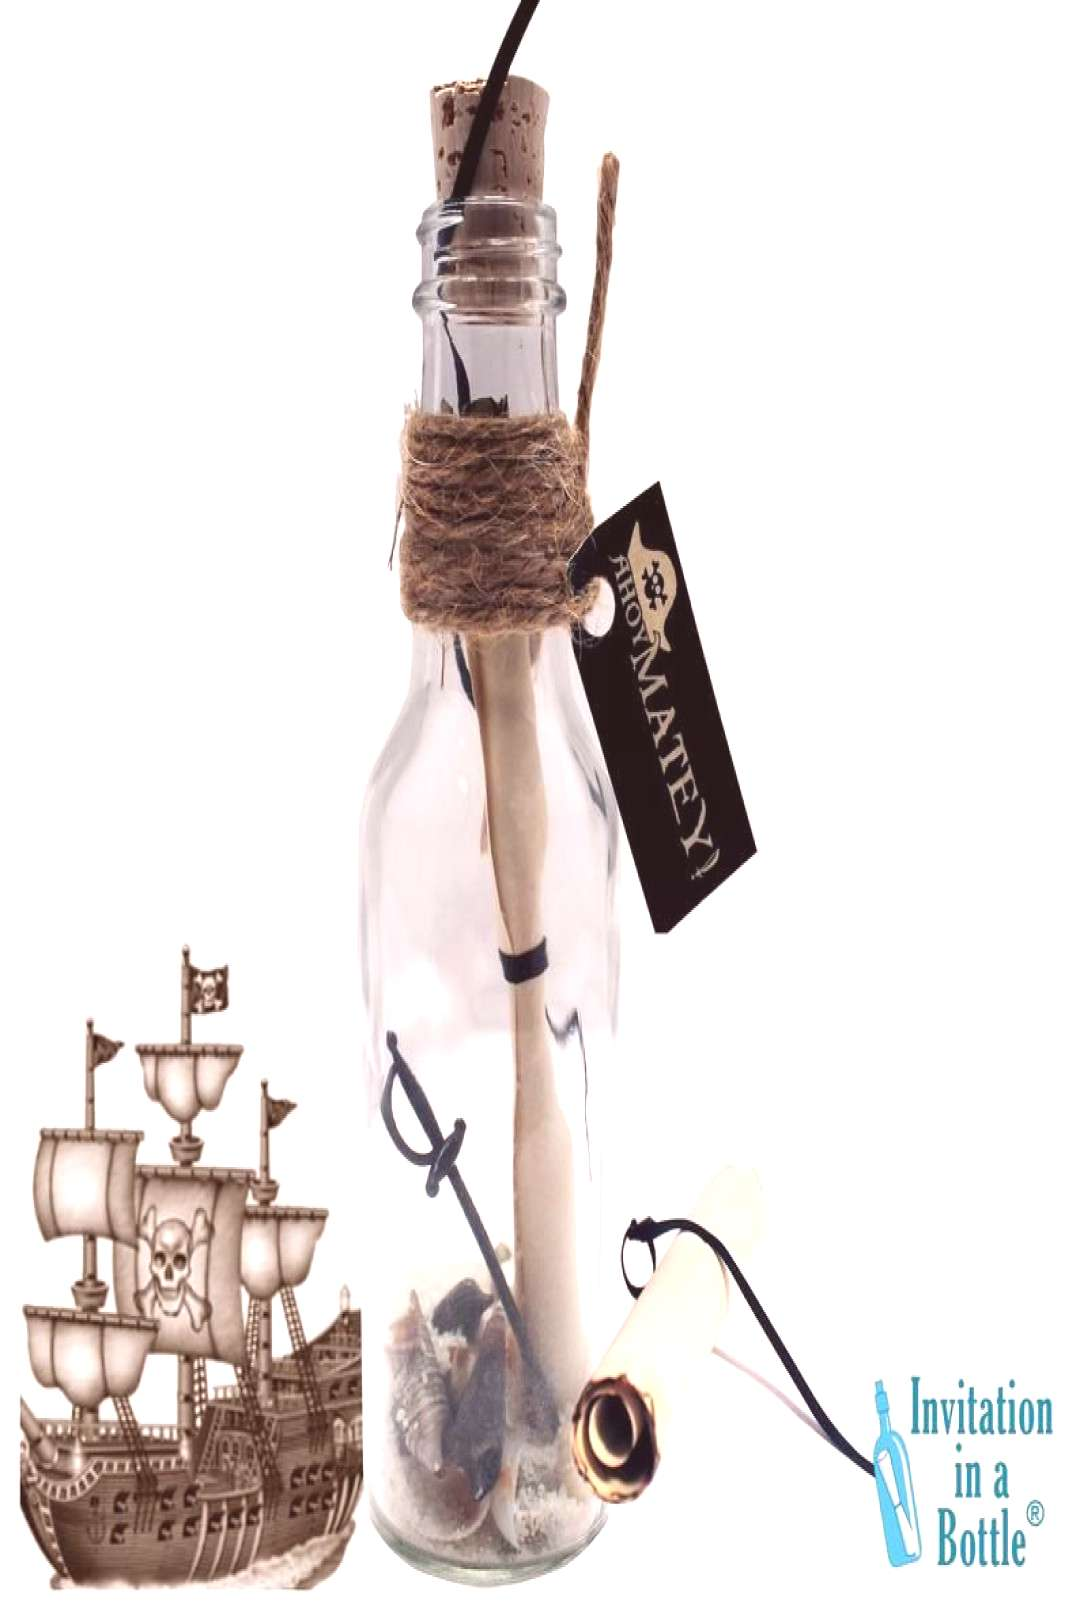 PIRATE Party Invitations, Kids Birthday Party Invitations In A Bottle Ahoy, Mateys! Chart ye course